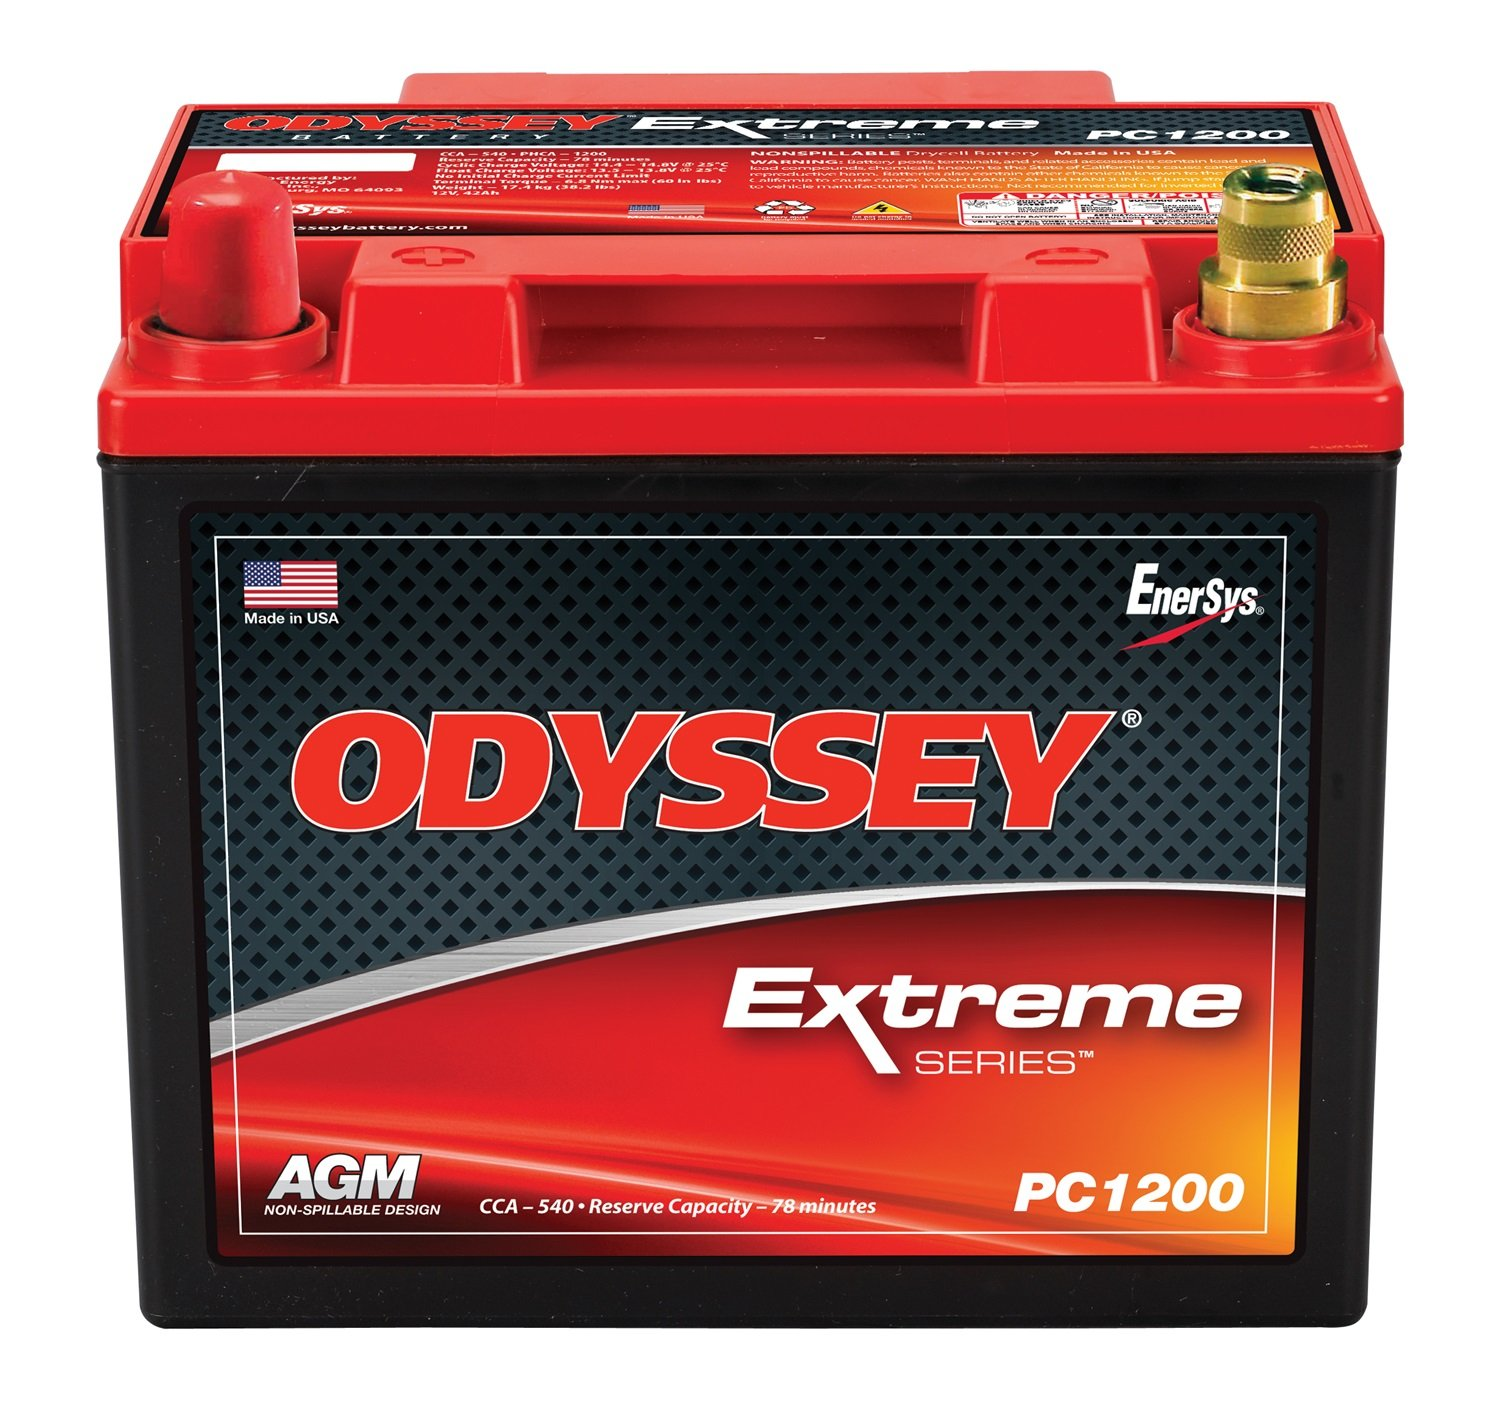 Odyssey PC1200LT Automotive Light Truck Battery